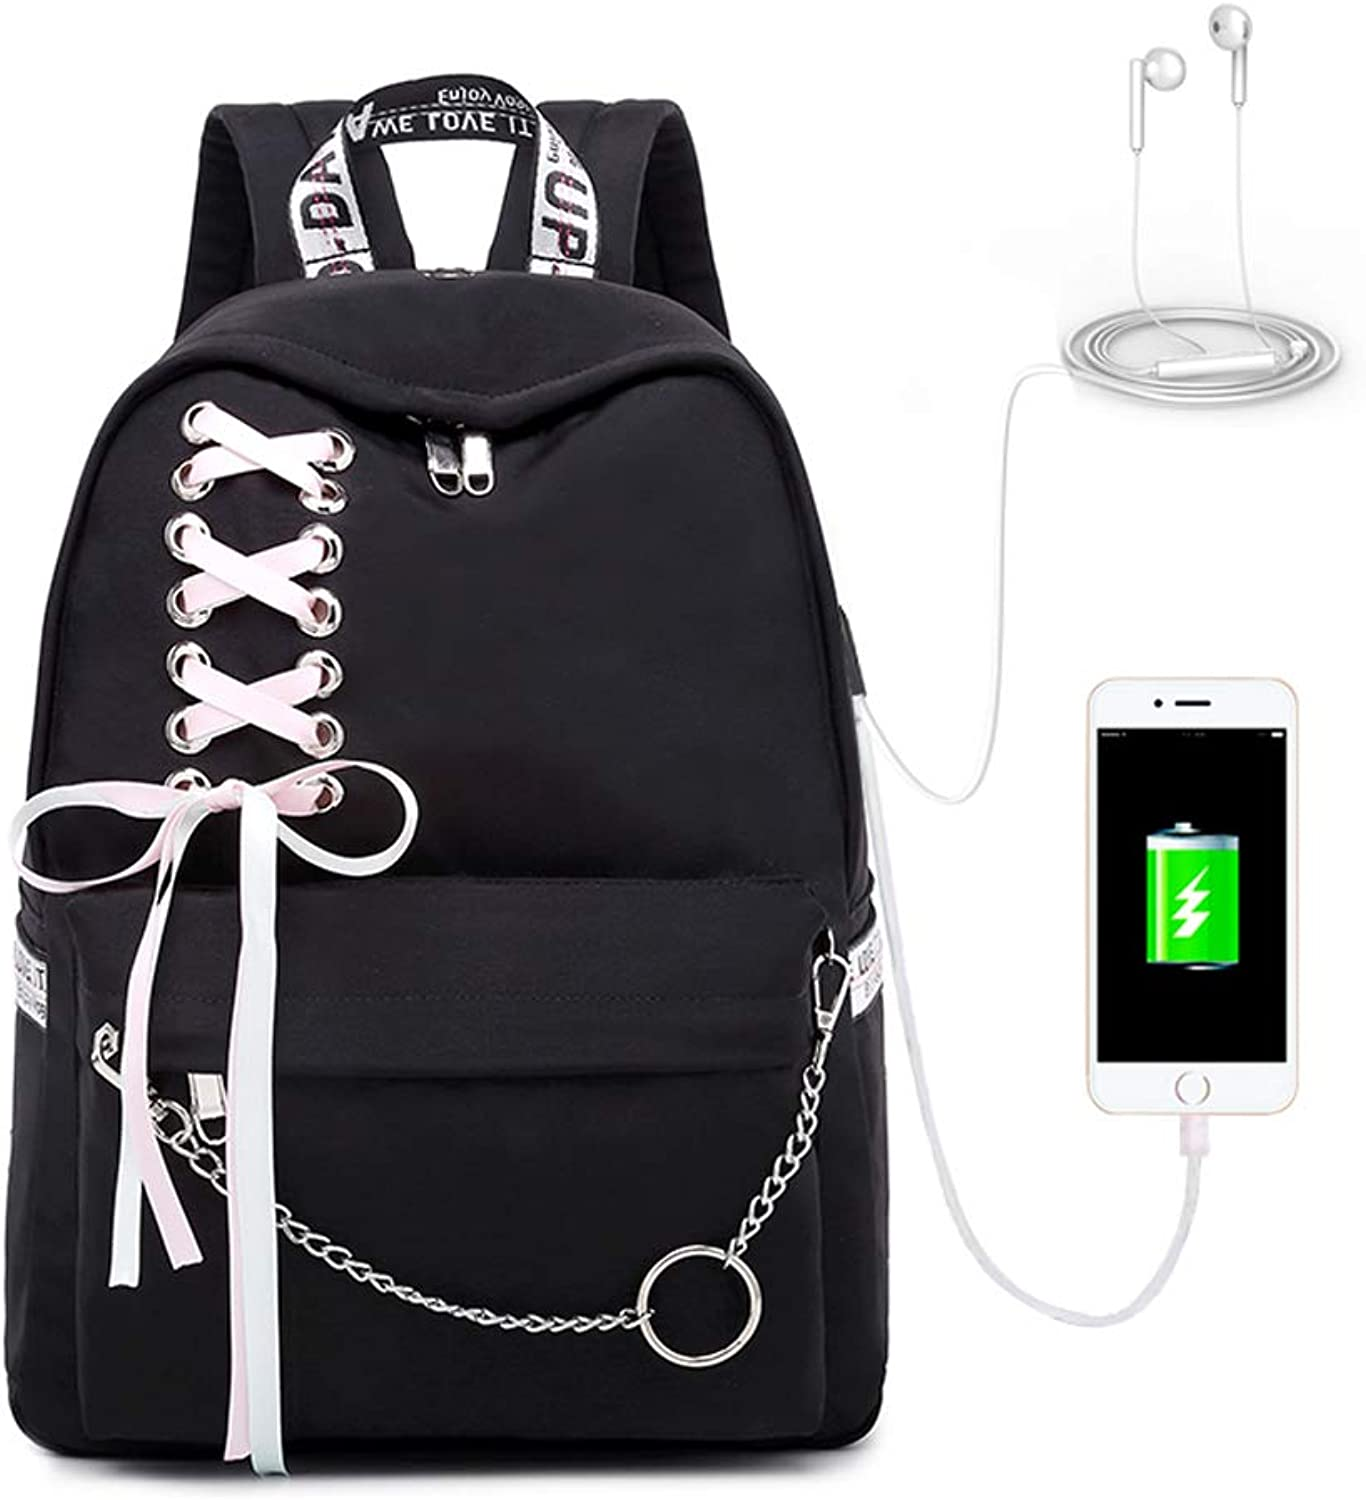 Junior high School Student Bag Shoulder Bag Female Campus Large Capacity Luminous Backpack Primary School Bag Female with Headphone Interface,Black